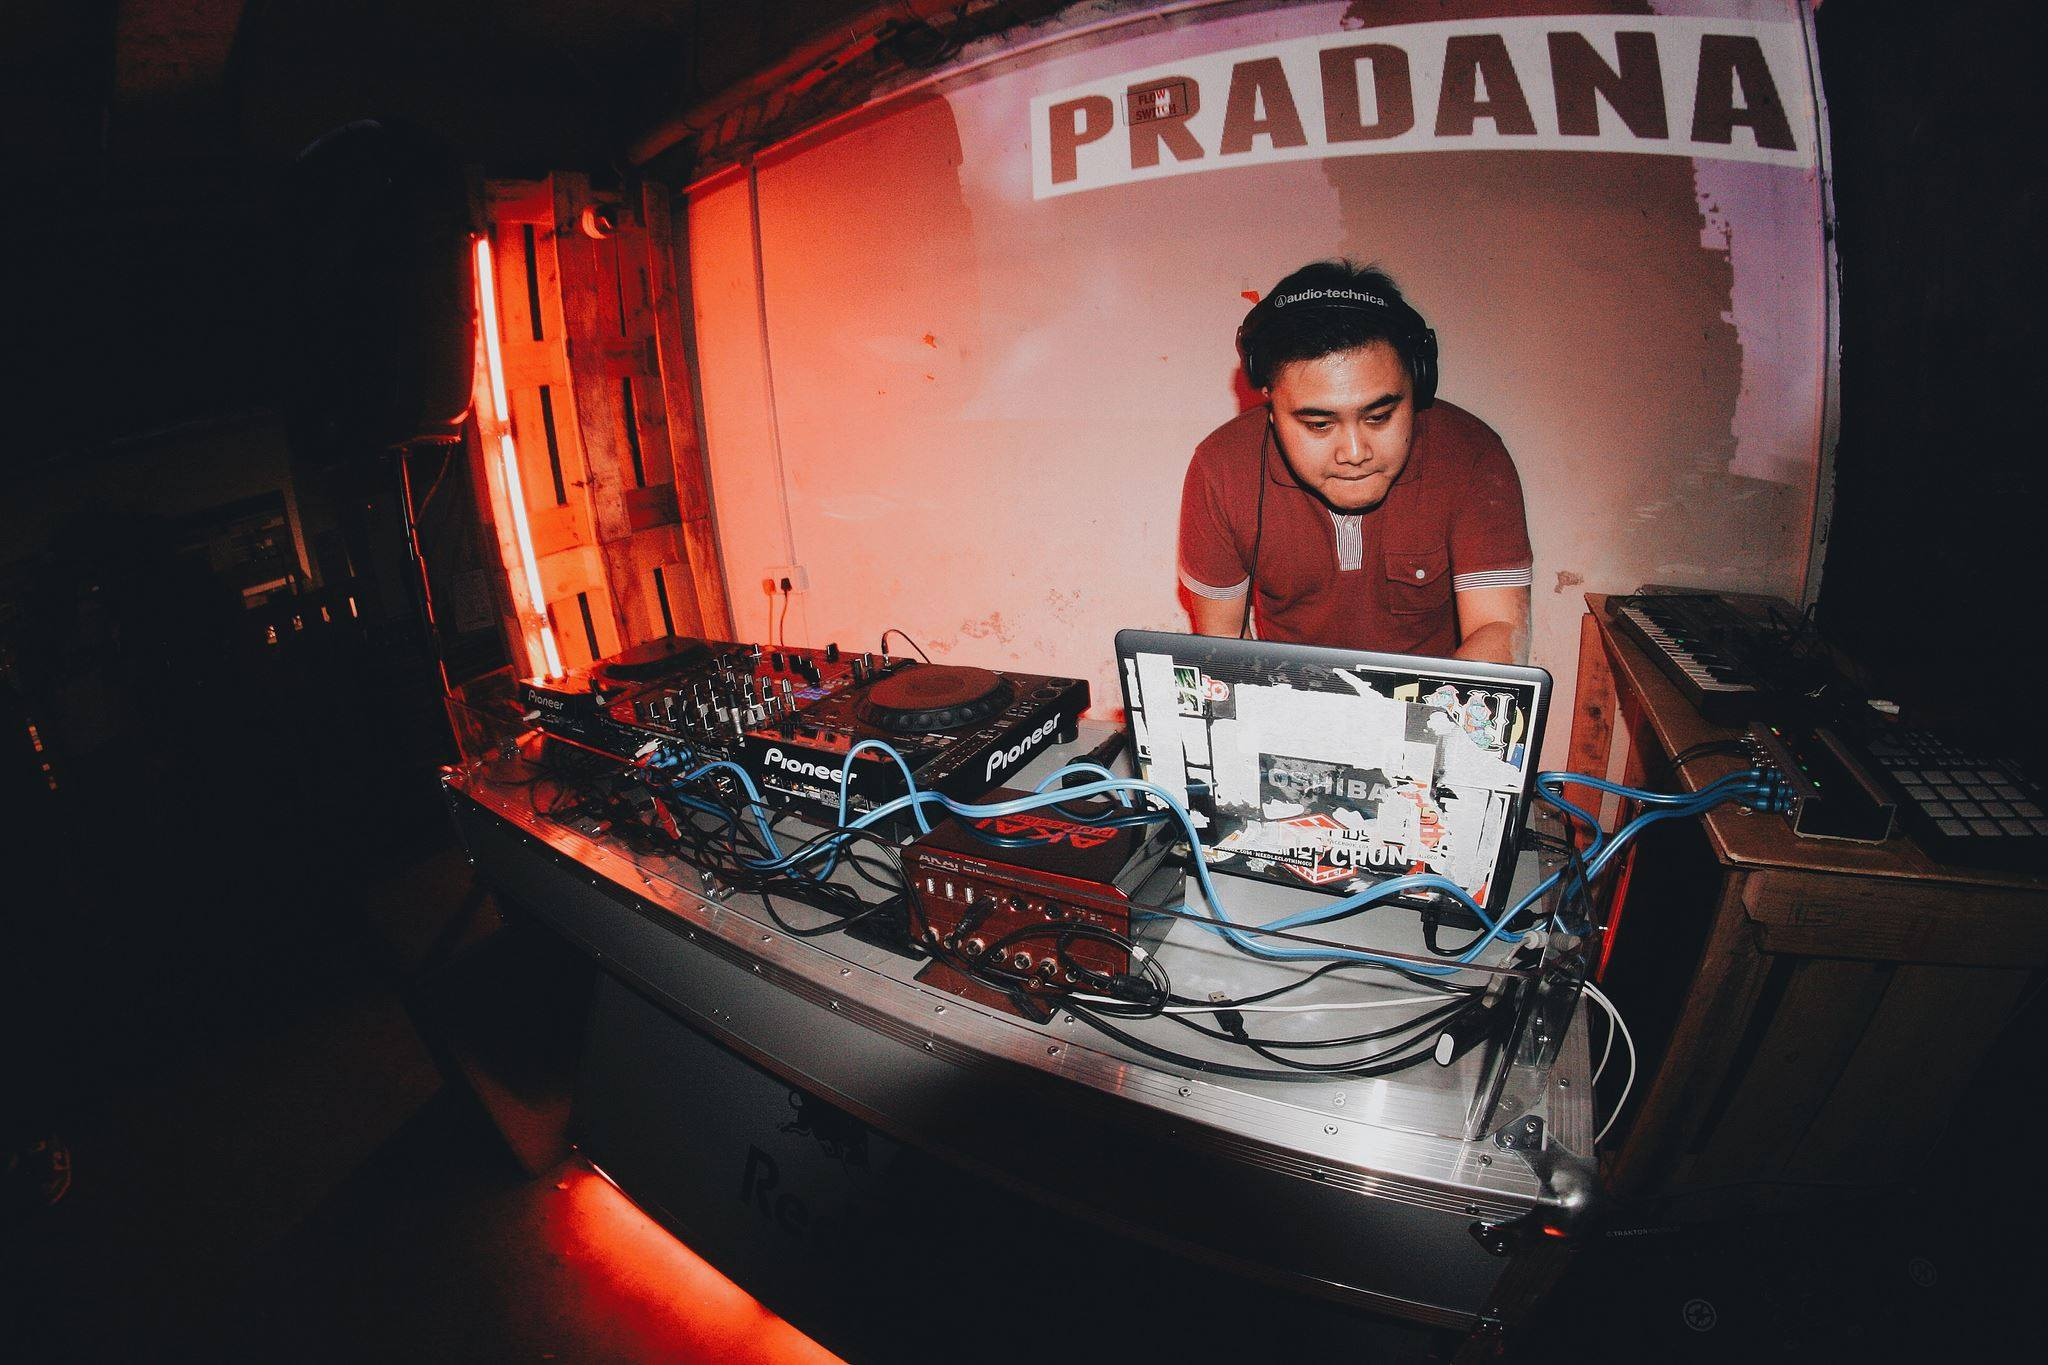 Pradana at Pisco Bar KL turns 5 on the 8th February